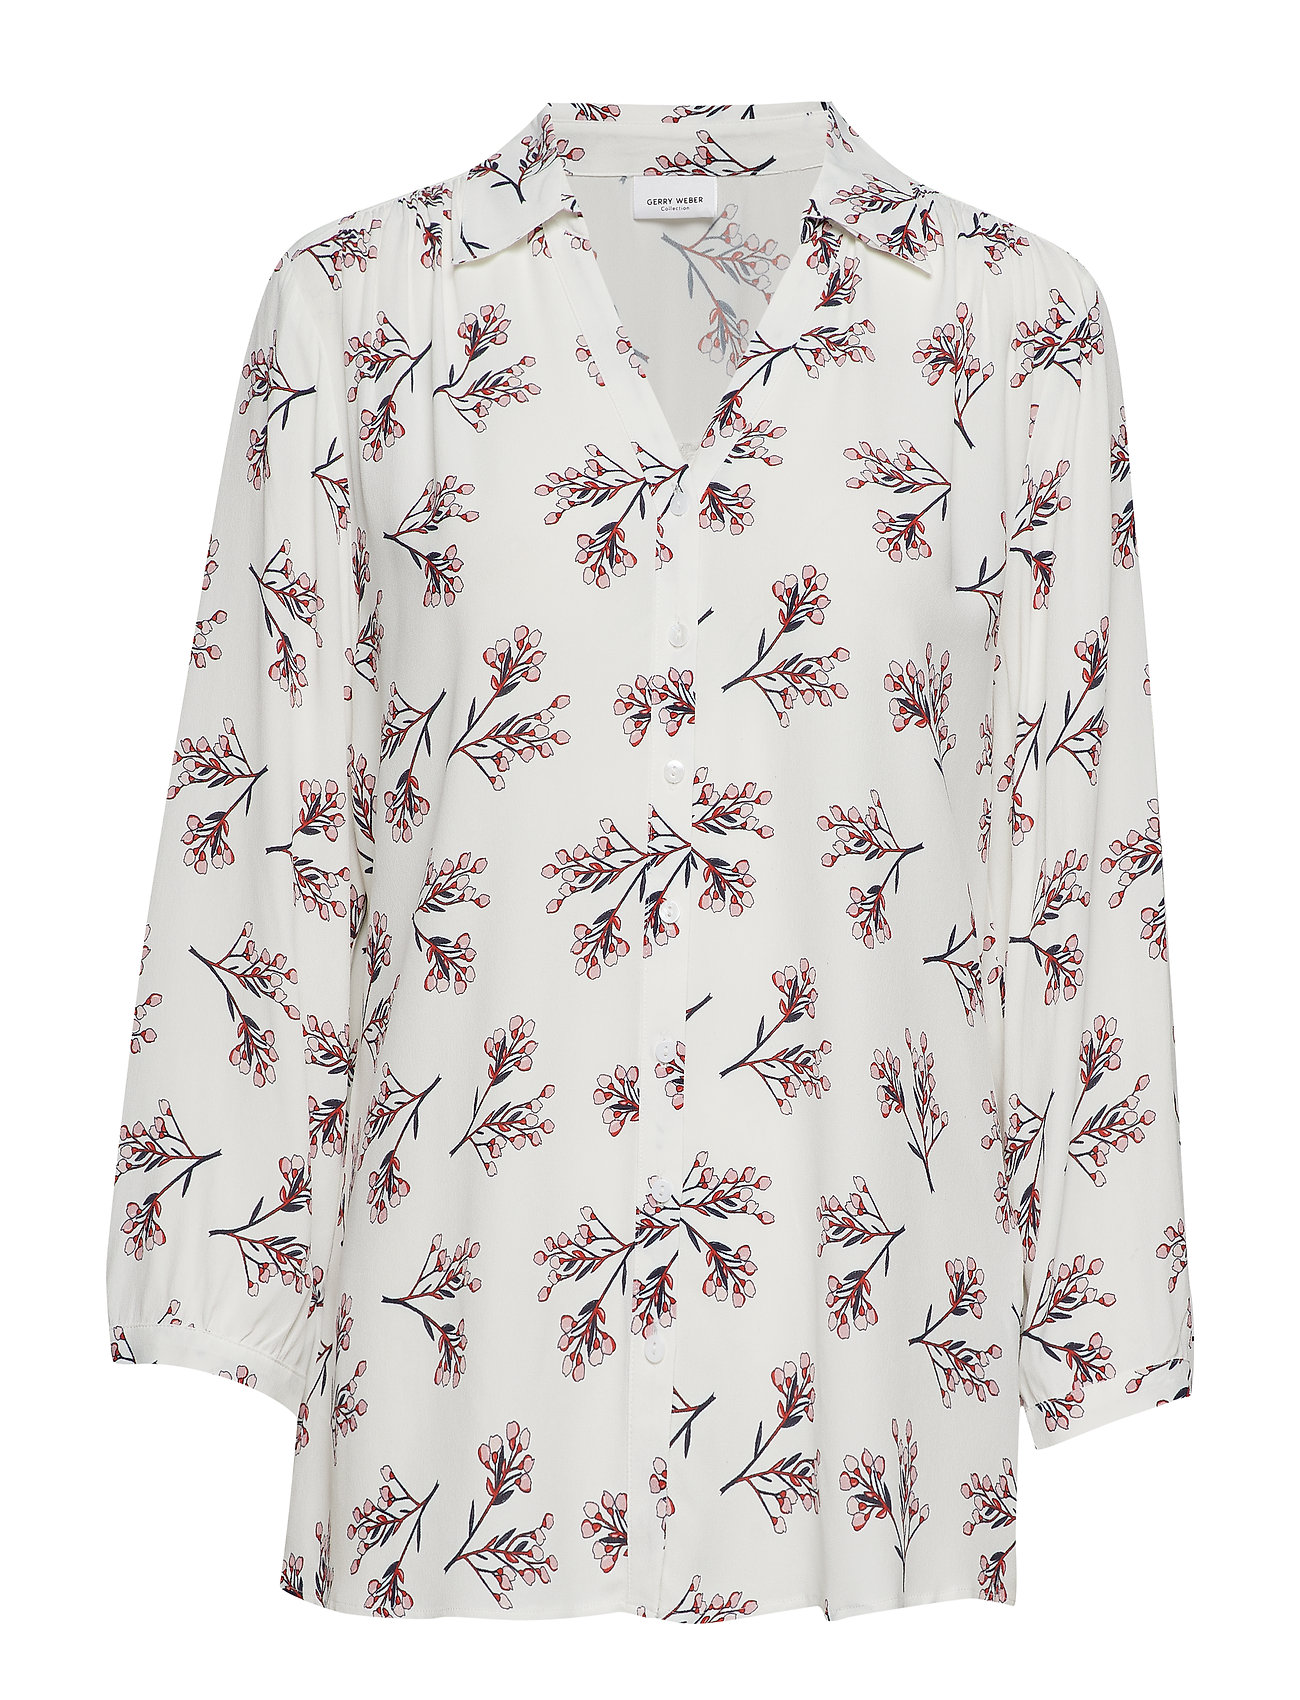 Gerry Weber BLOUSE 3/4-SLEEVE - ECRU/ BLUSH/ BLUE PRINT